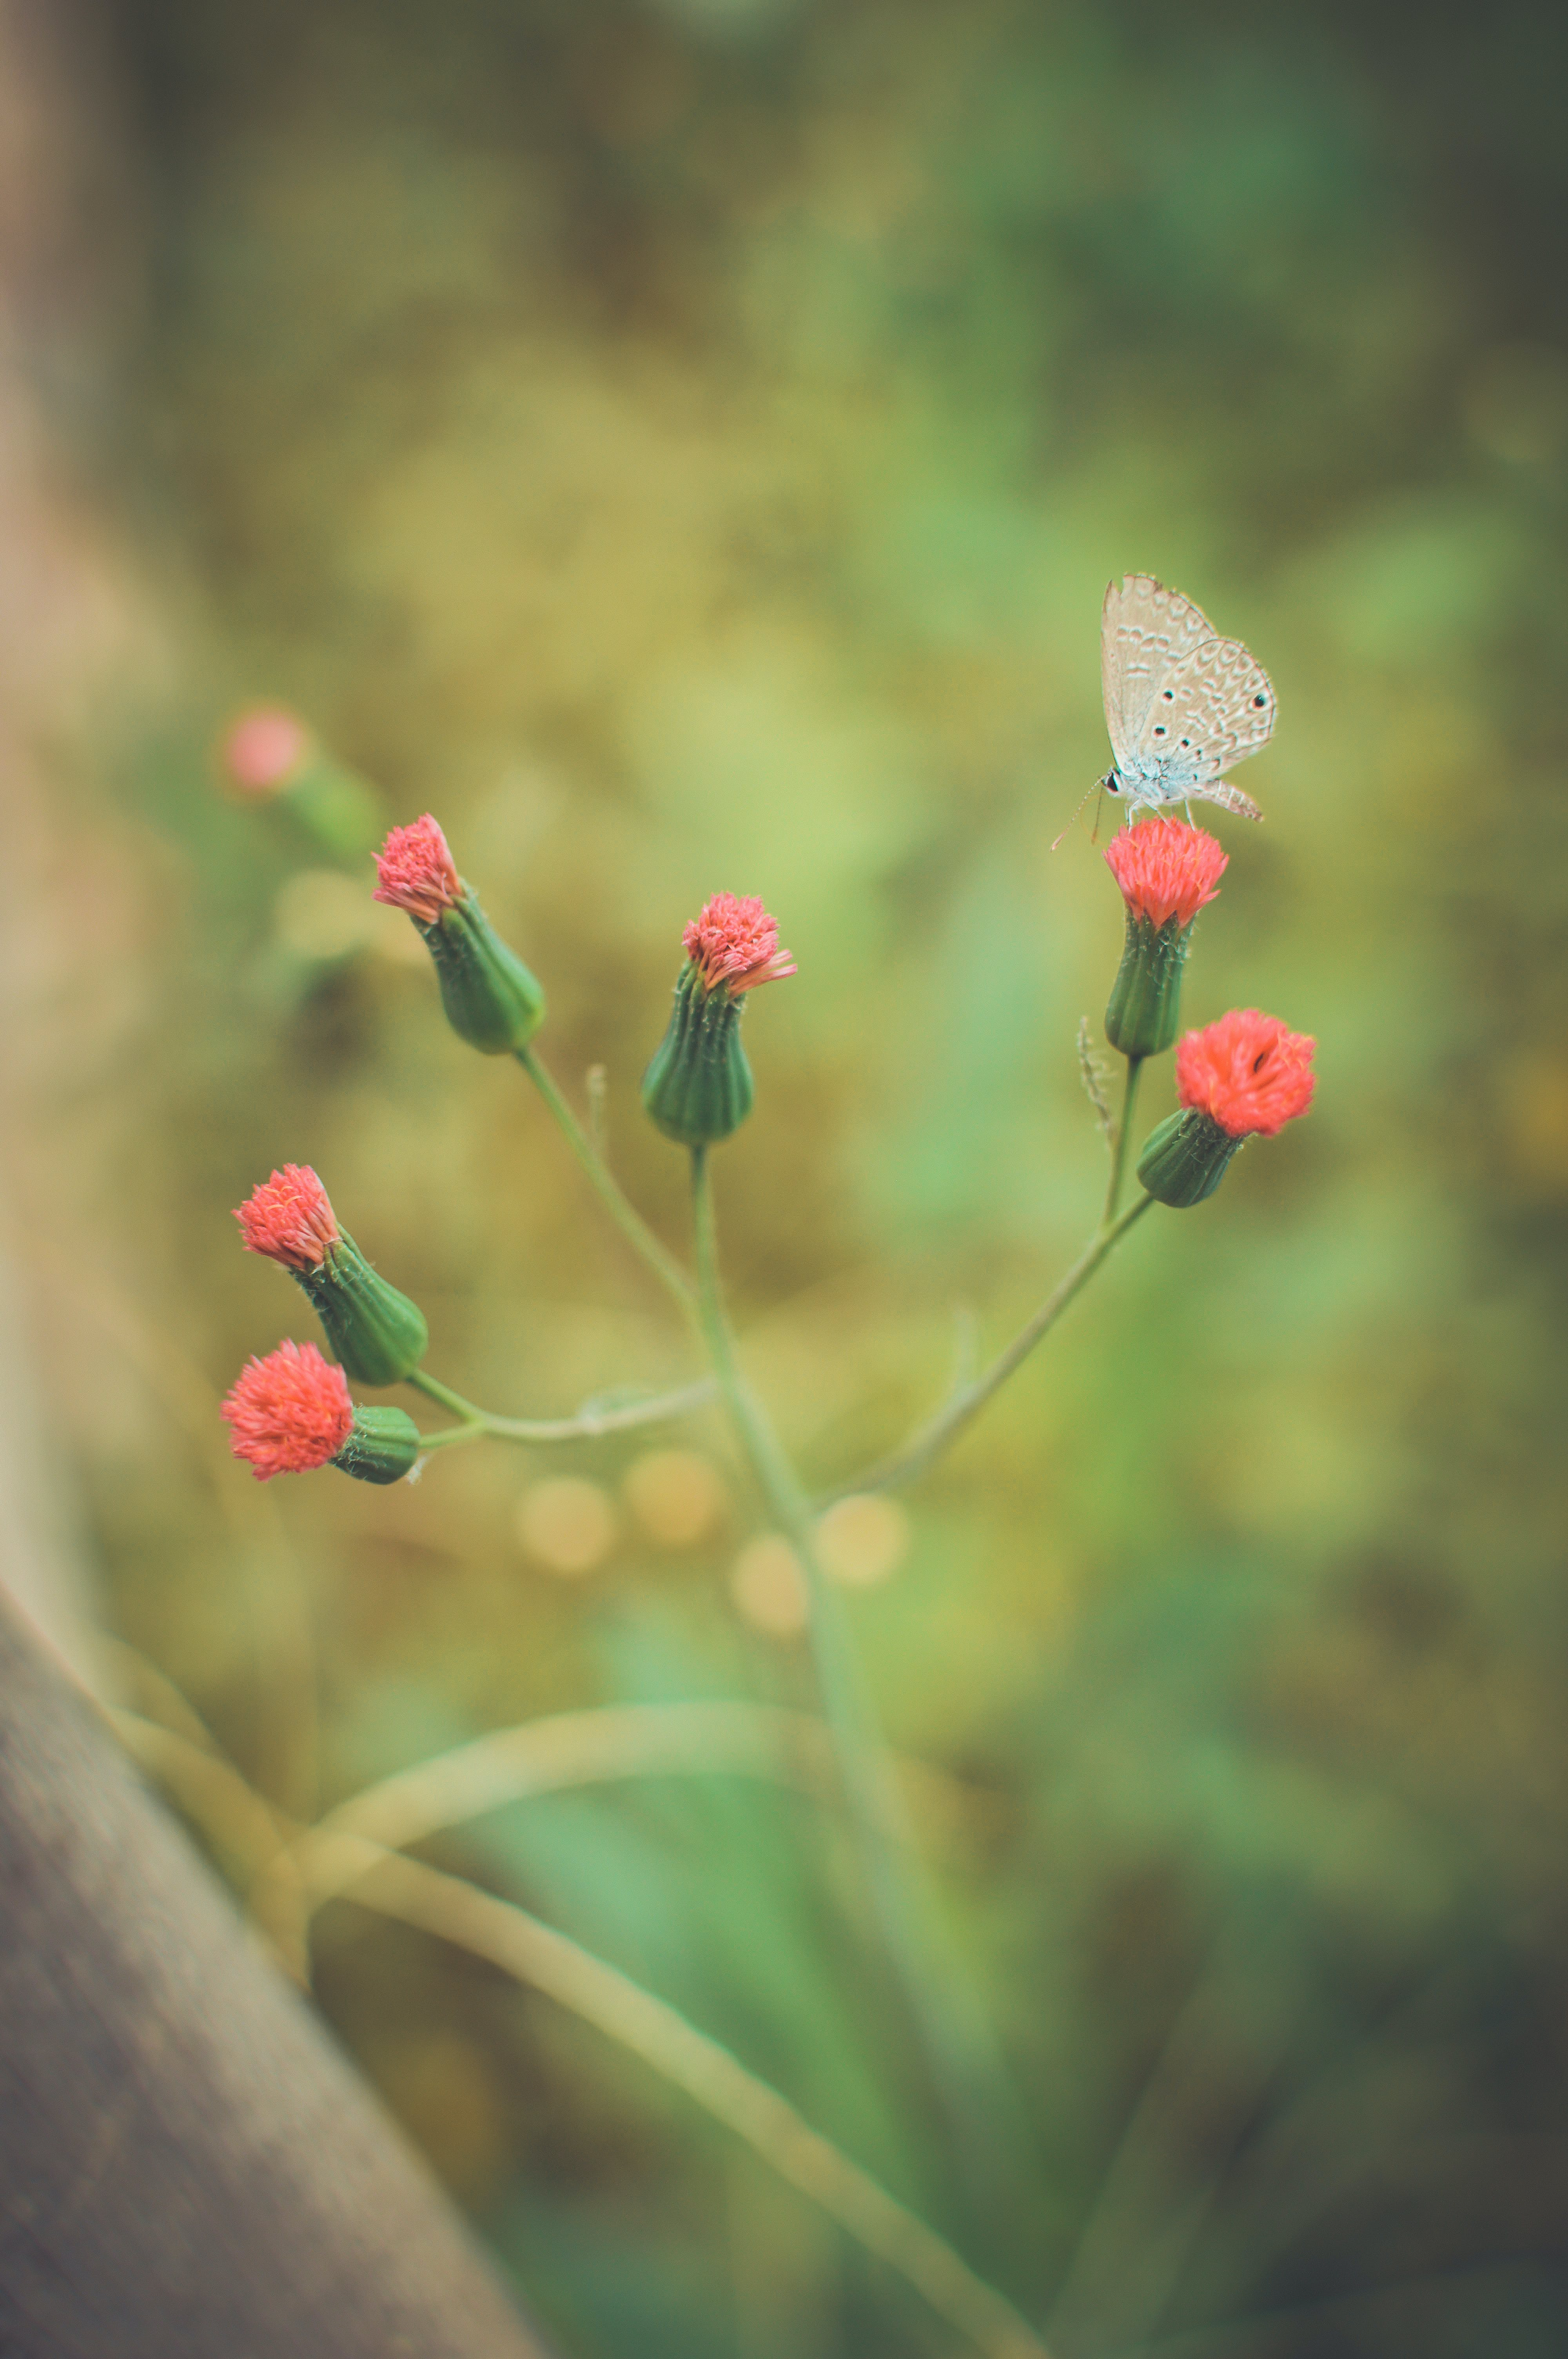 Free stock photo of flowers, garden, blurred, butterfly